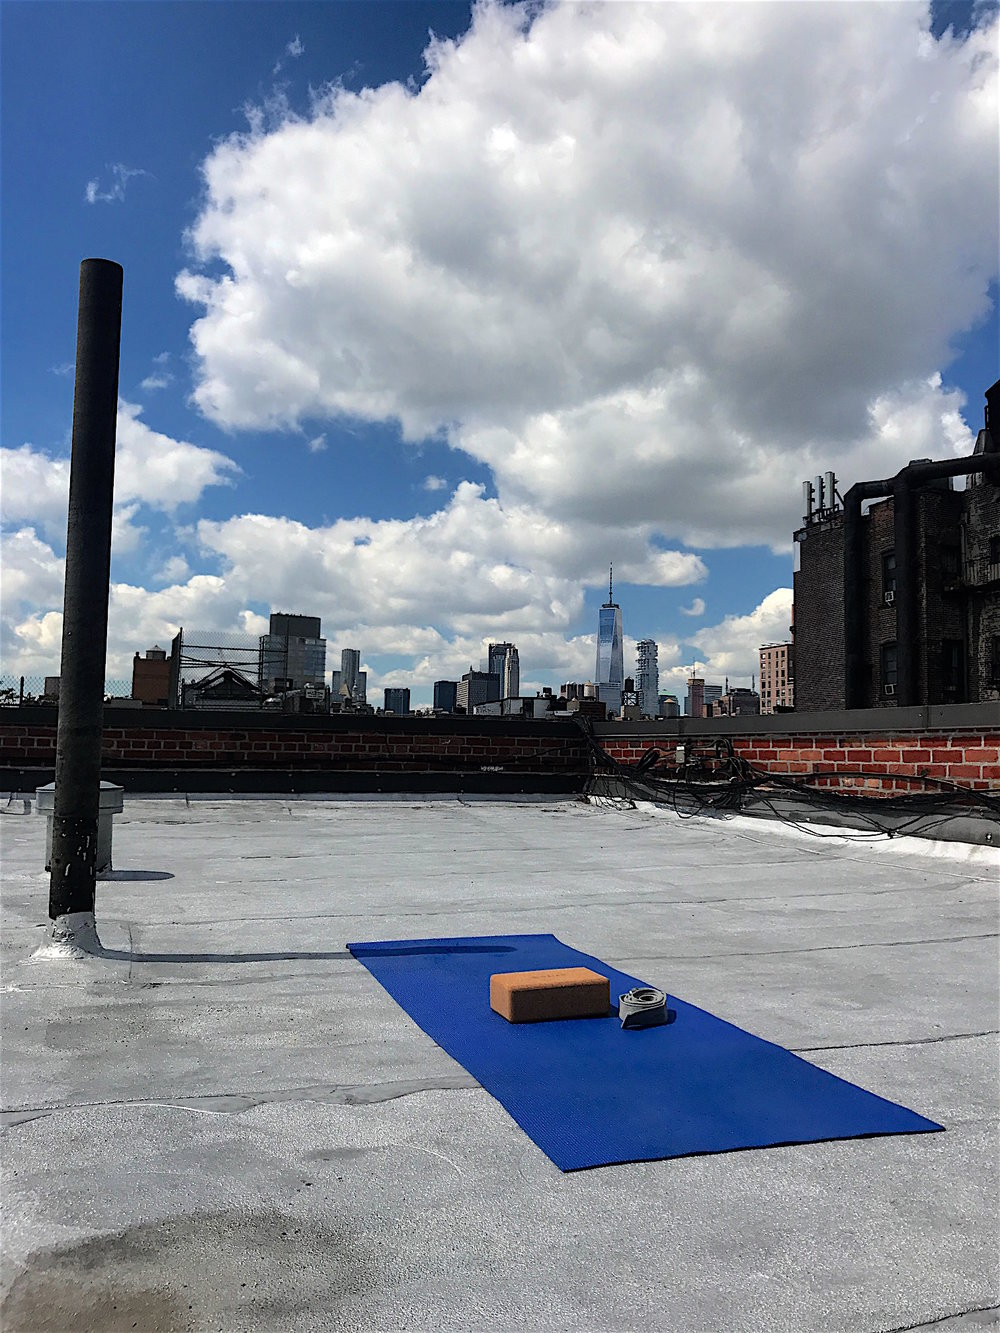 Iyengara yoga and running are my good habits. I managed to learn how to practice at home, but sometimes this NYC view won't let me focus.